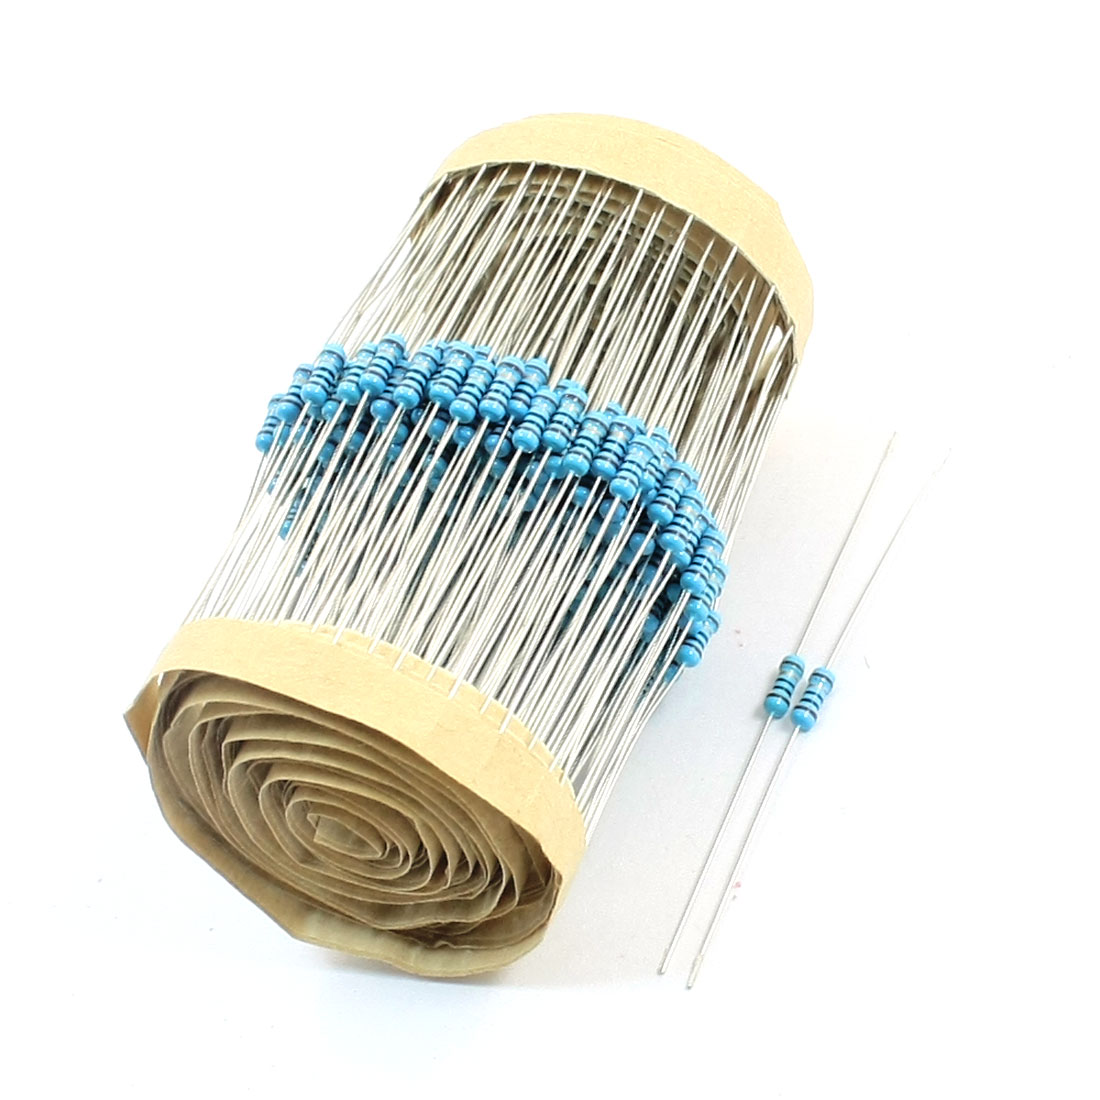 300 Pcs 1/4W Power 1% 10 Ohm Resistance Colored Ring Through Hole Mounting Flameproof Axial Lead Type Metal Oxide Film Resistors